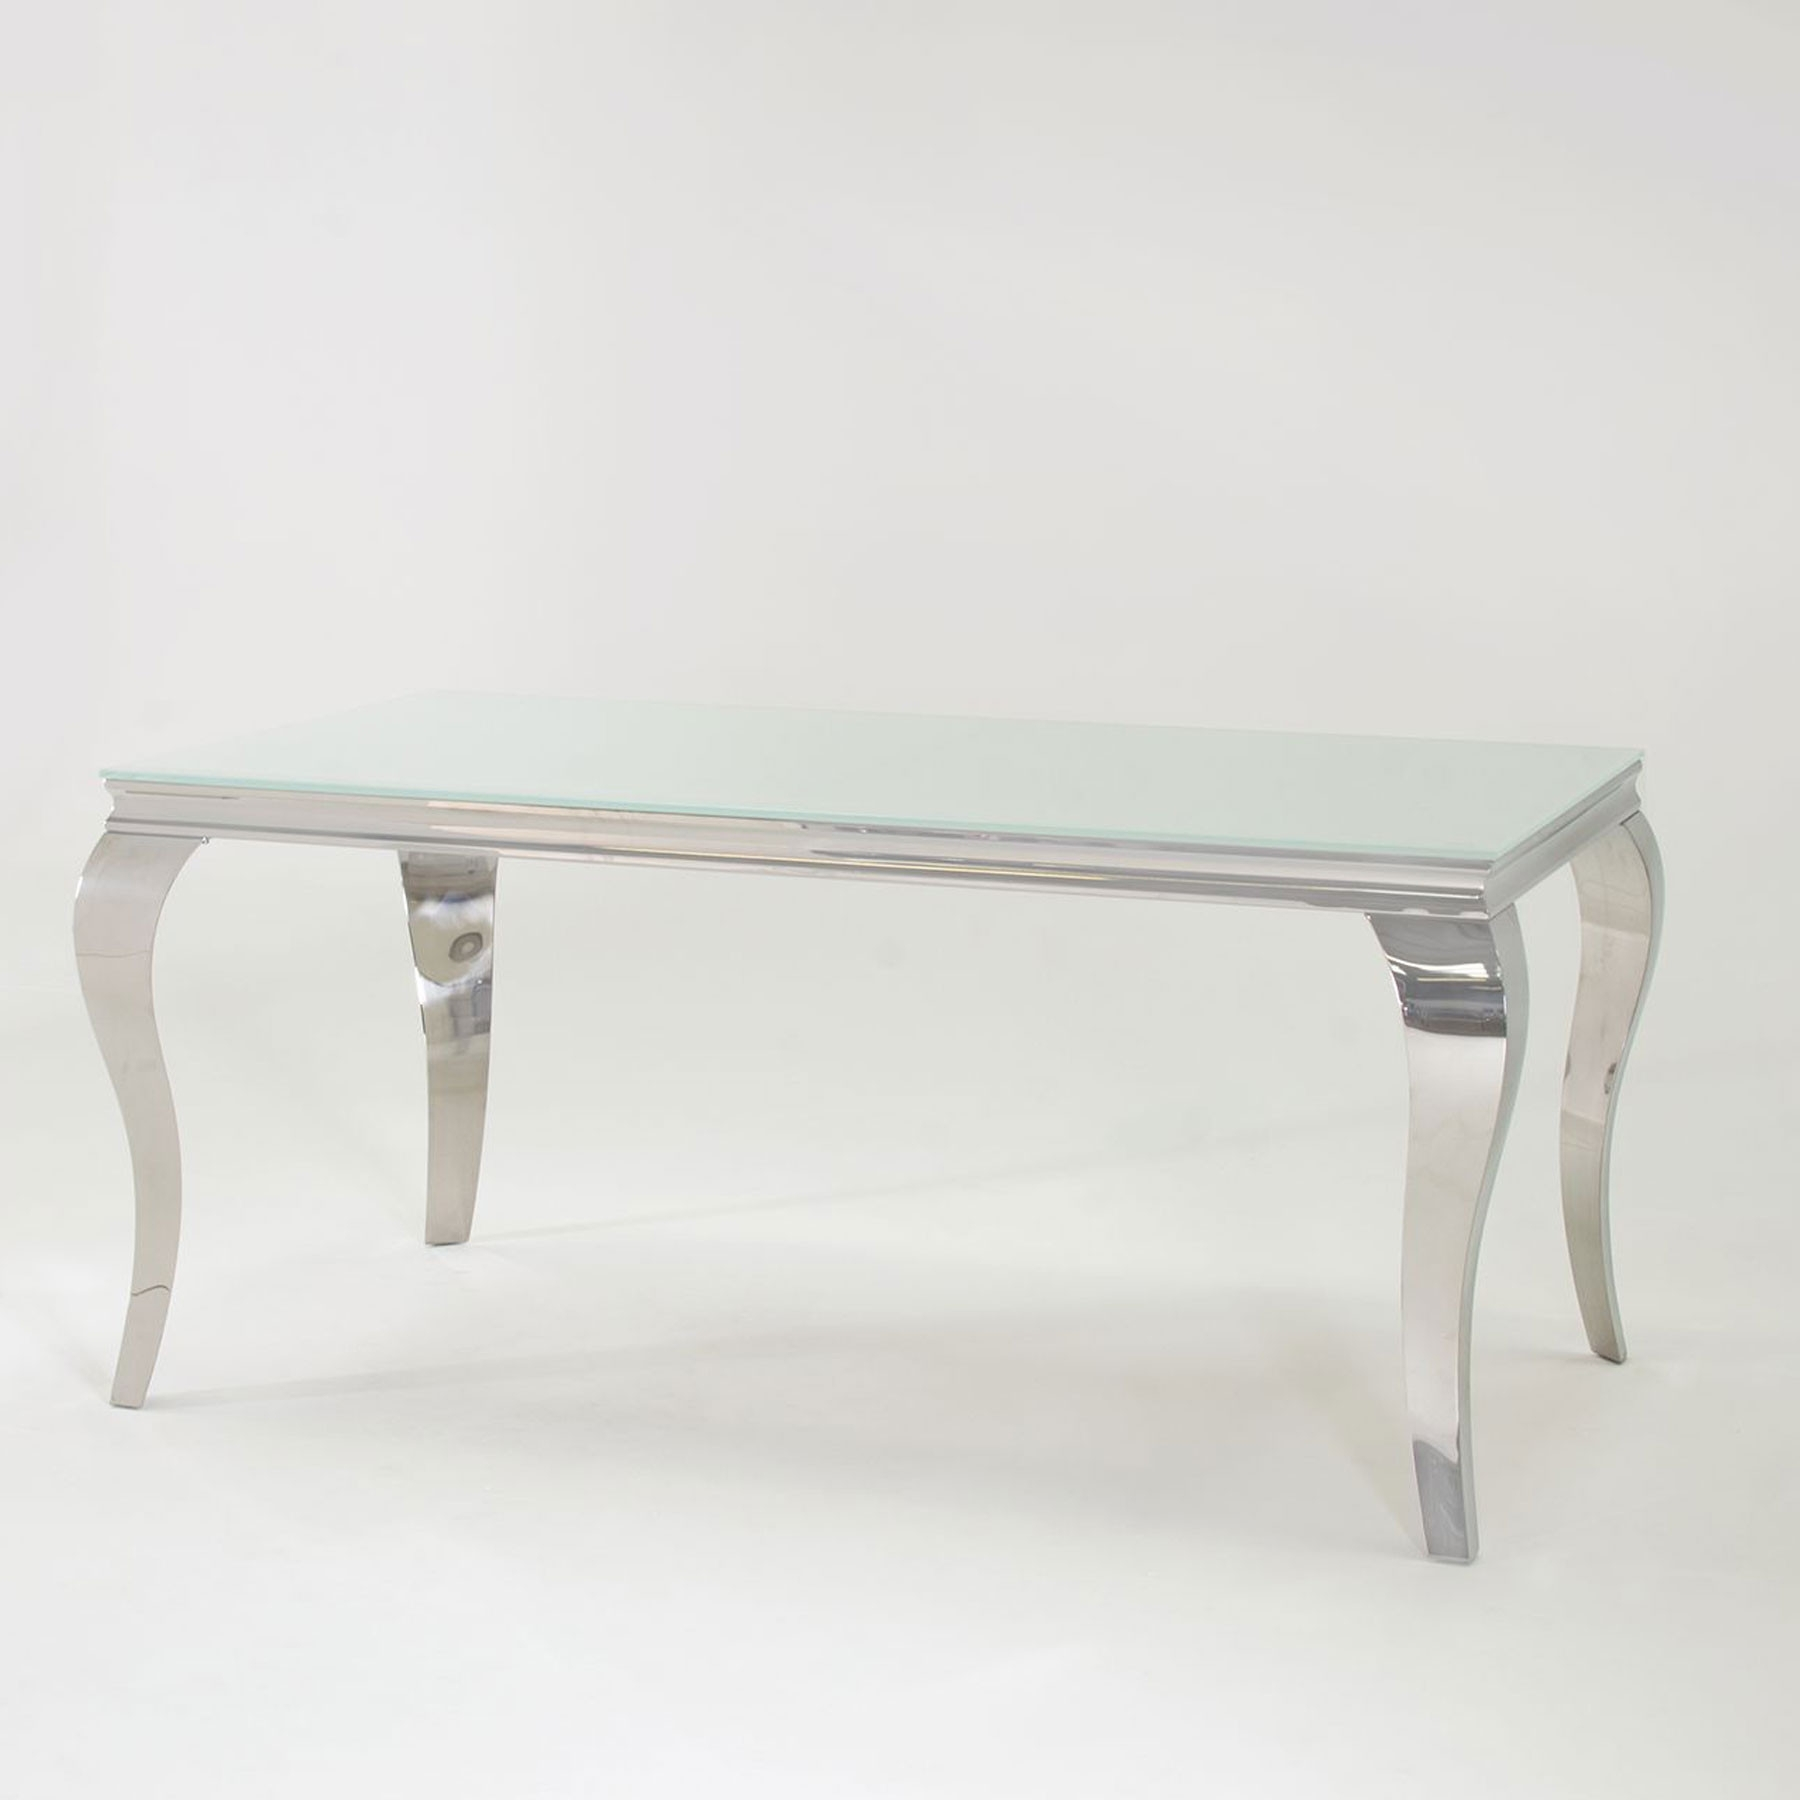 Widely Used Fadenza White Glass 200Cm Dining Table With Regard To Glass Dining Tables With Wooden Legs (View 11 of 25)